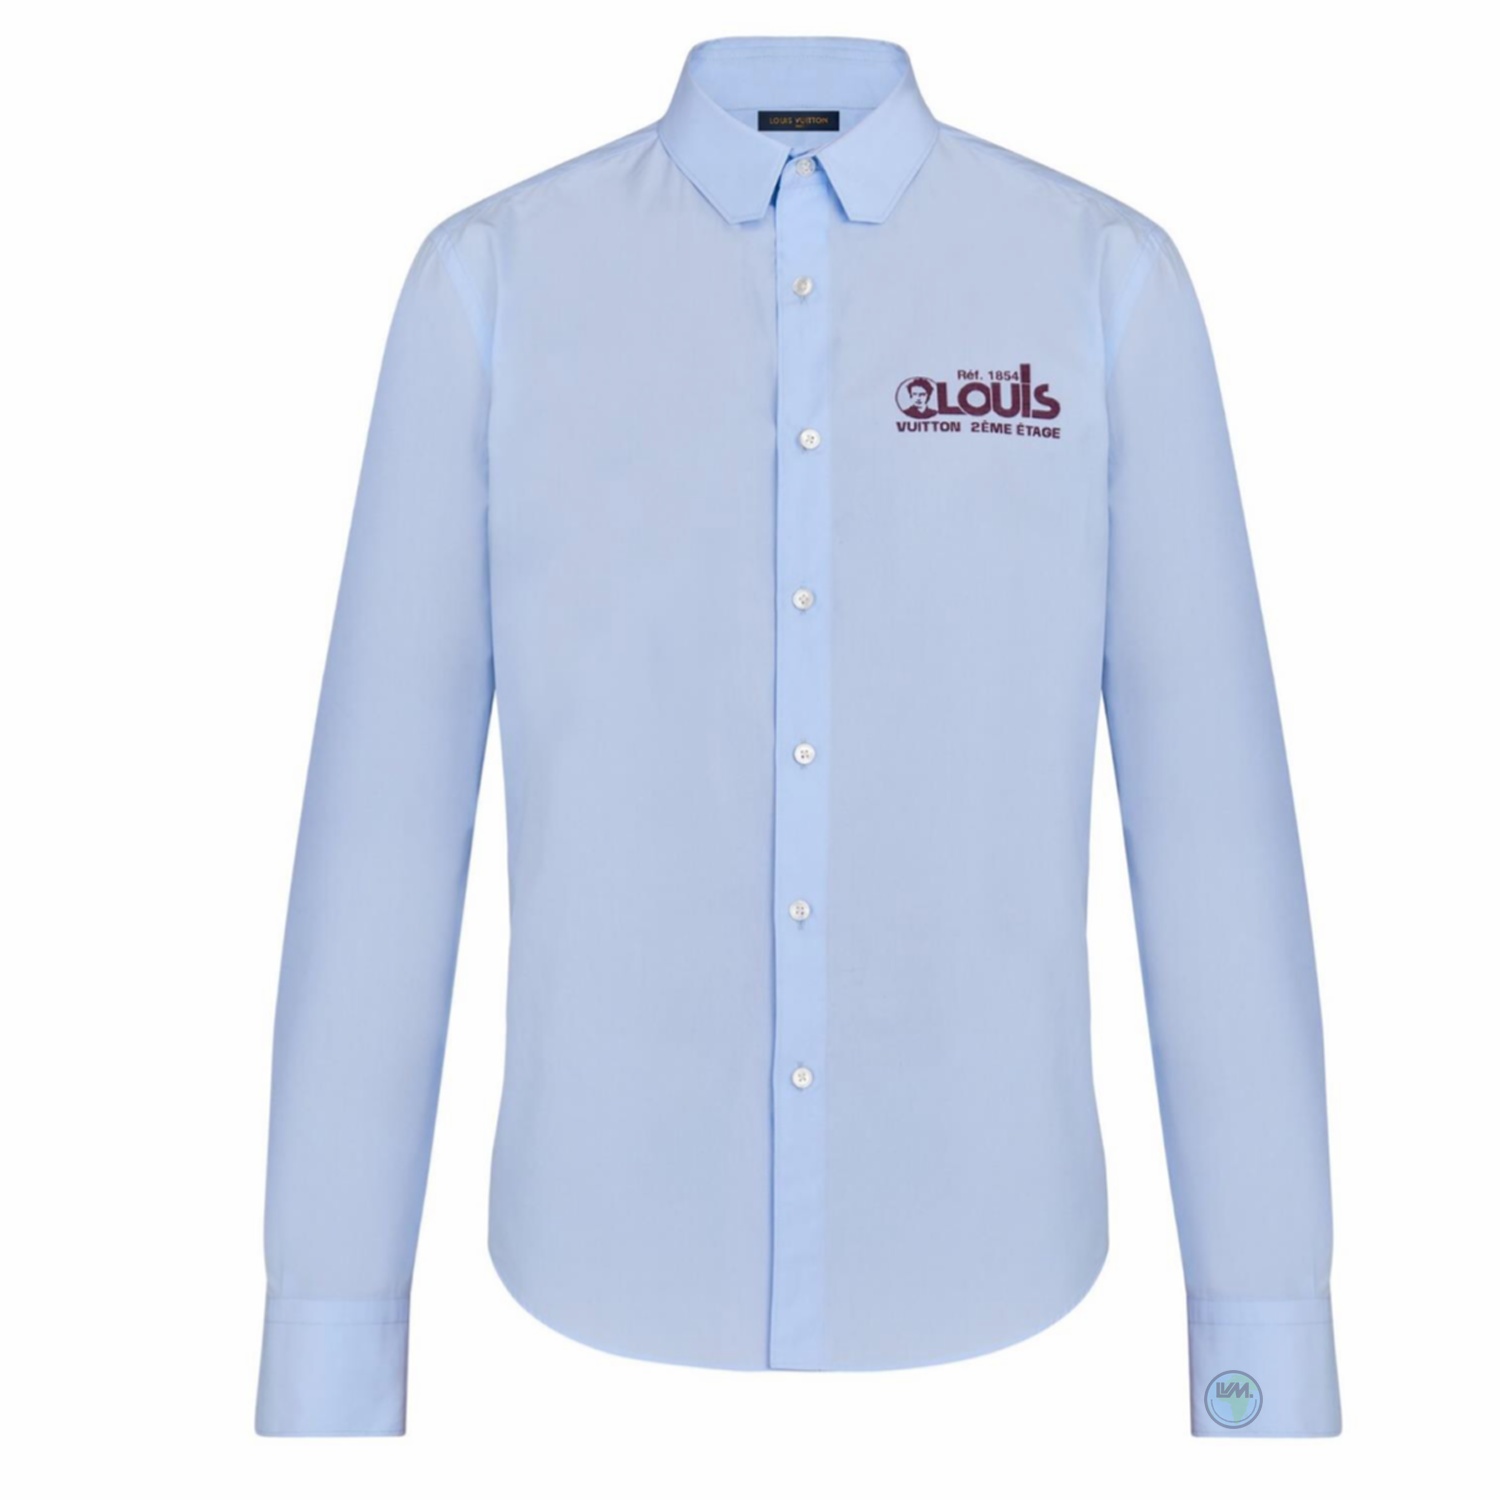 REGULAR SHIRT - €550 $7351A5DCDBLEU